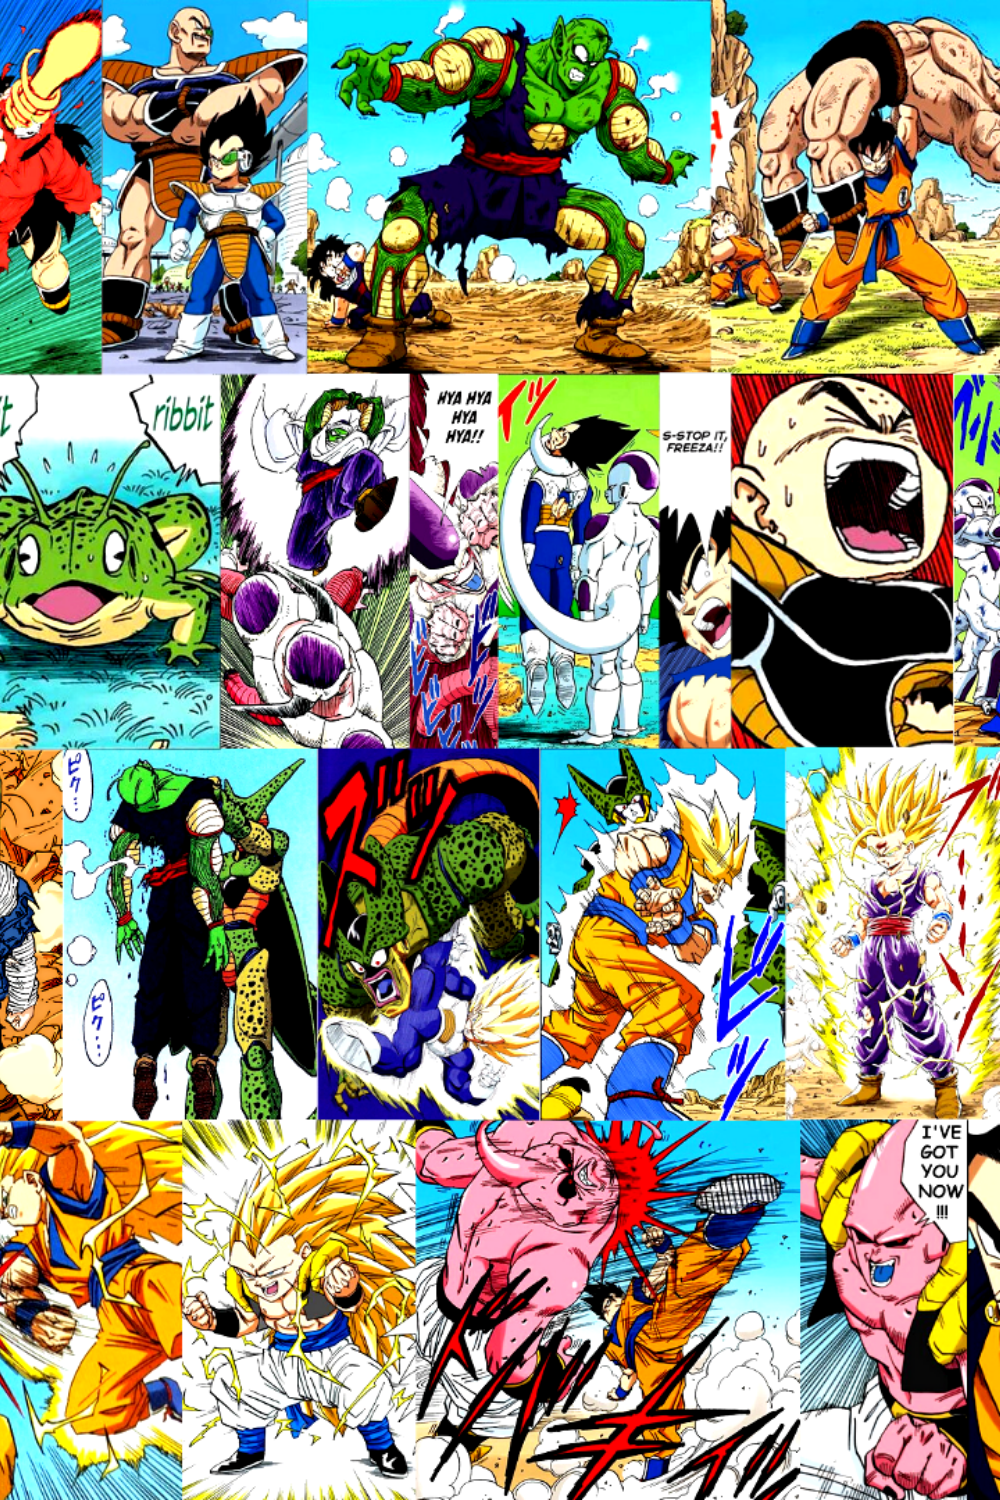 Dragon Ball Z Four Saga Progression Timeline High Quality Canvas Poster Print Only 16 9 Dbz Art In 2021 Poster Prints Dragon Ball Z Dragon Ball